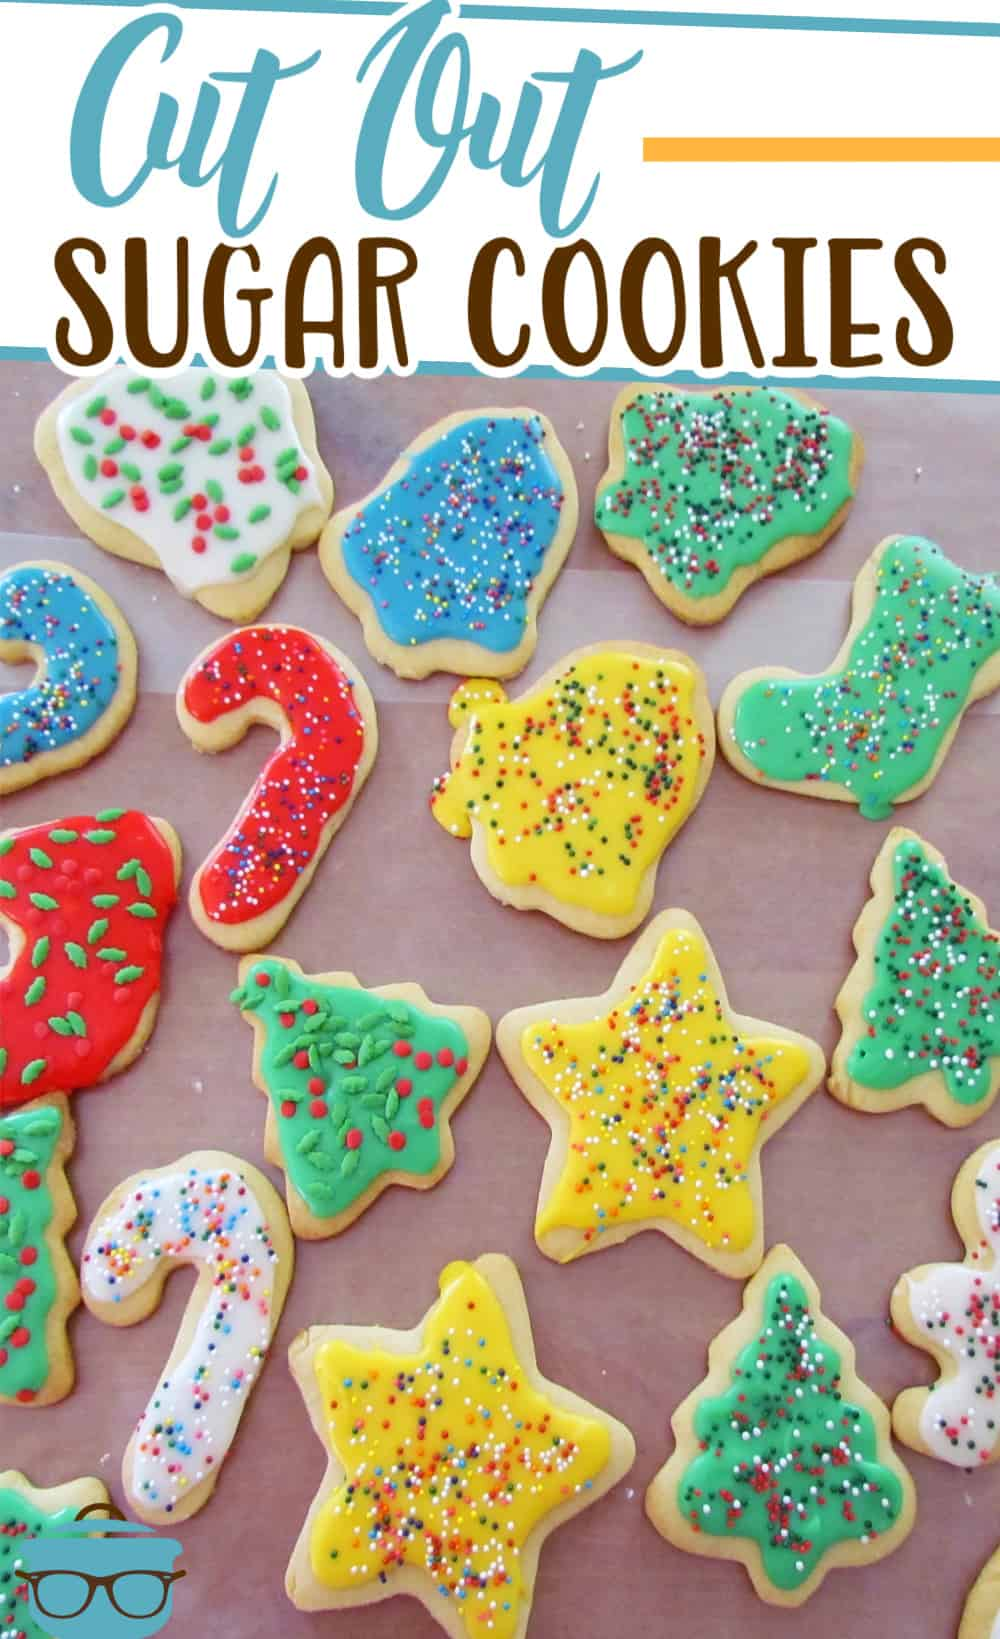 This Christmas Cut-Out Sugar Cookies recipe is foolproof! They hold their shape after baking and they also taste amazing! Top with icing!